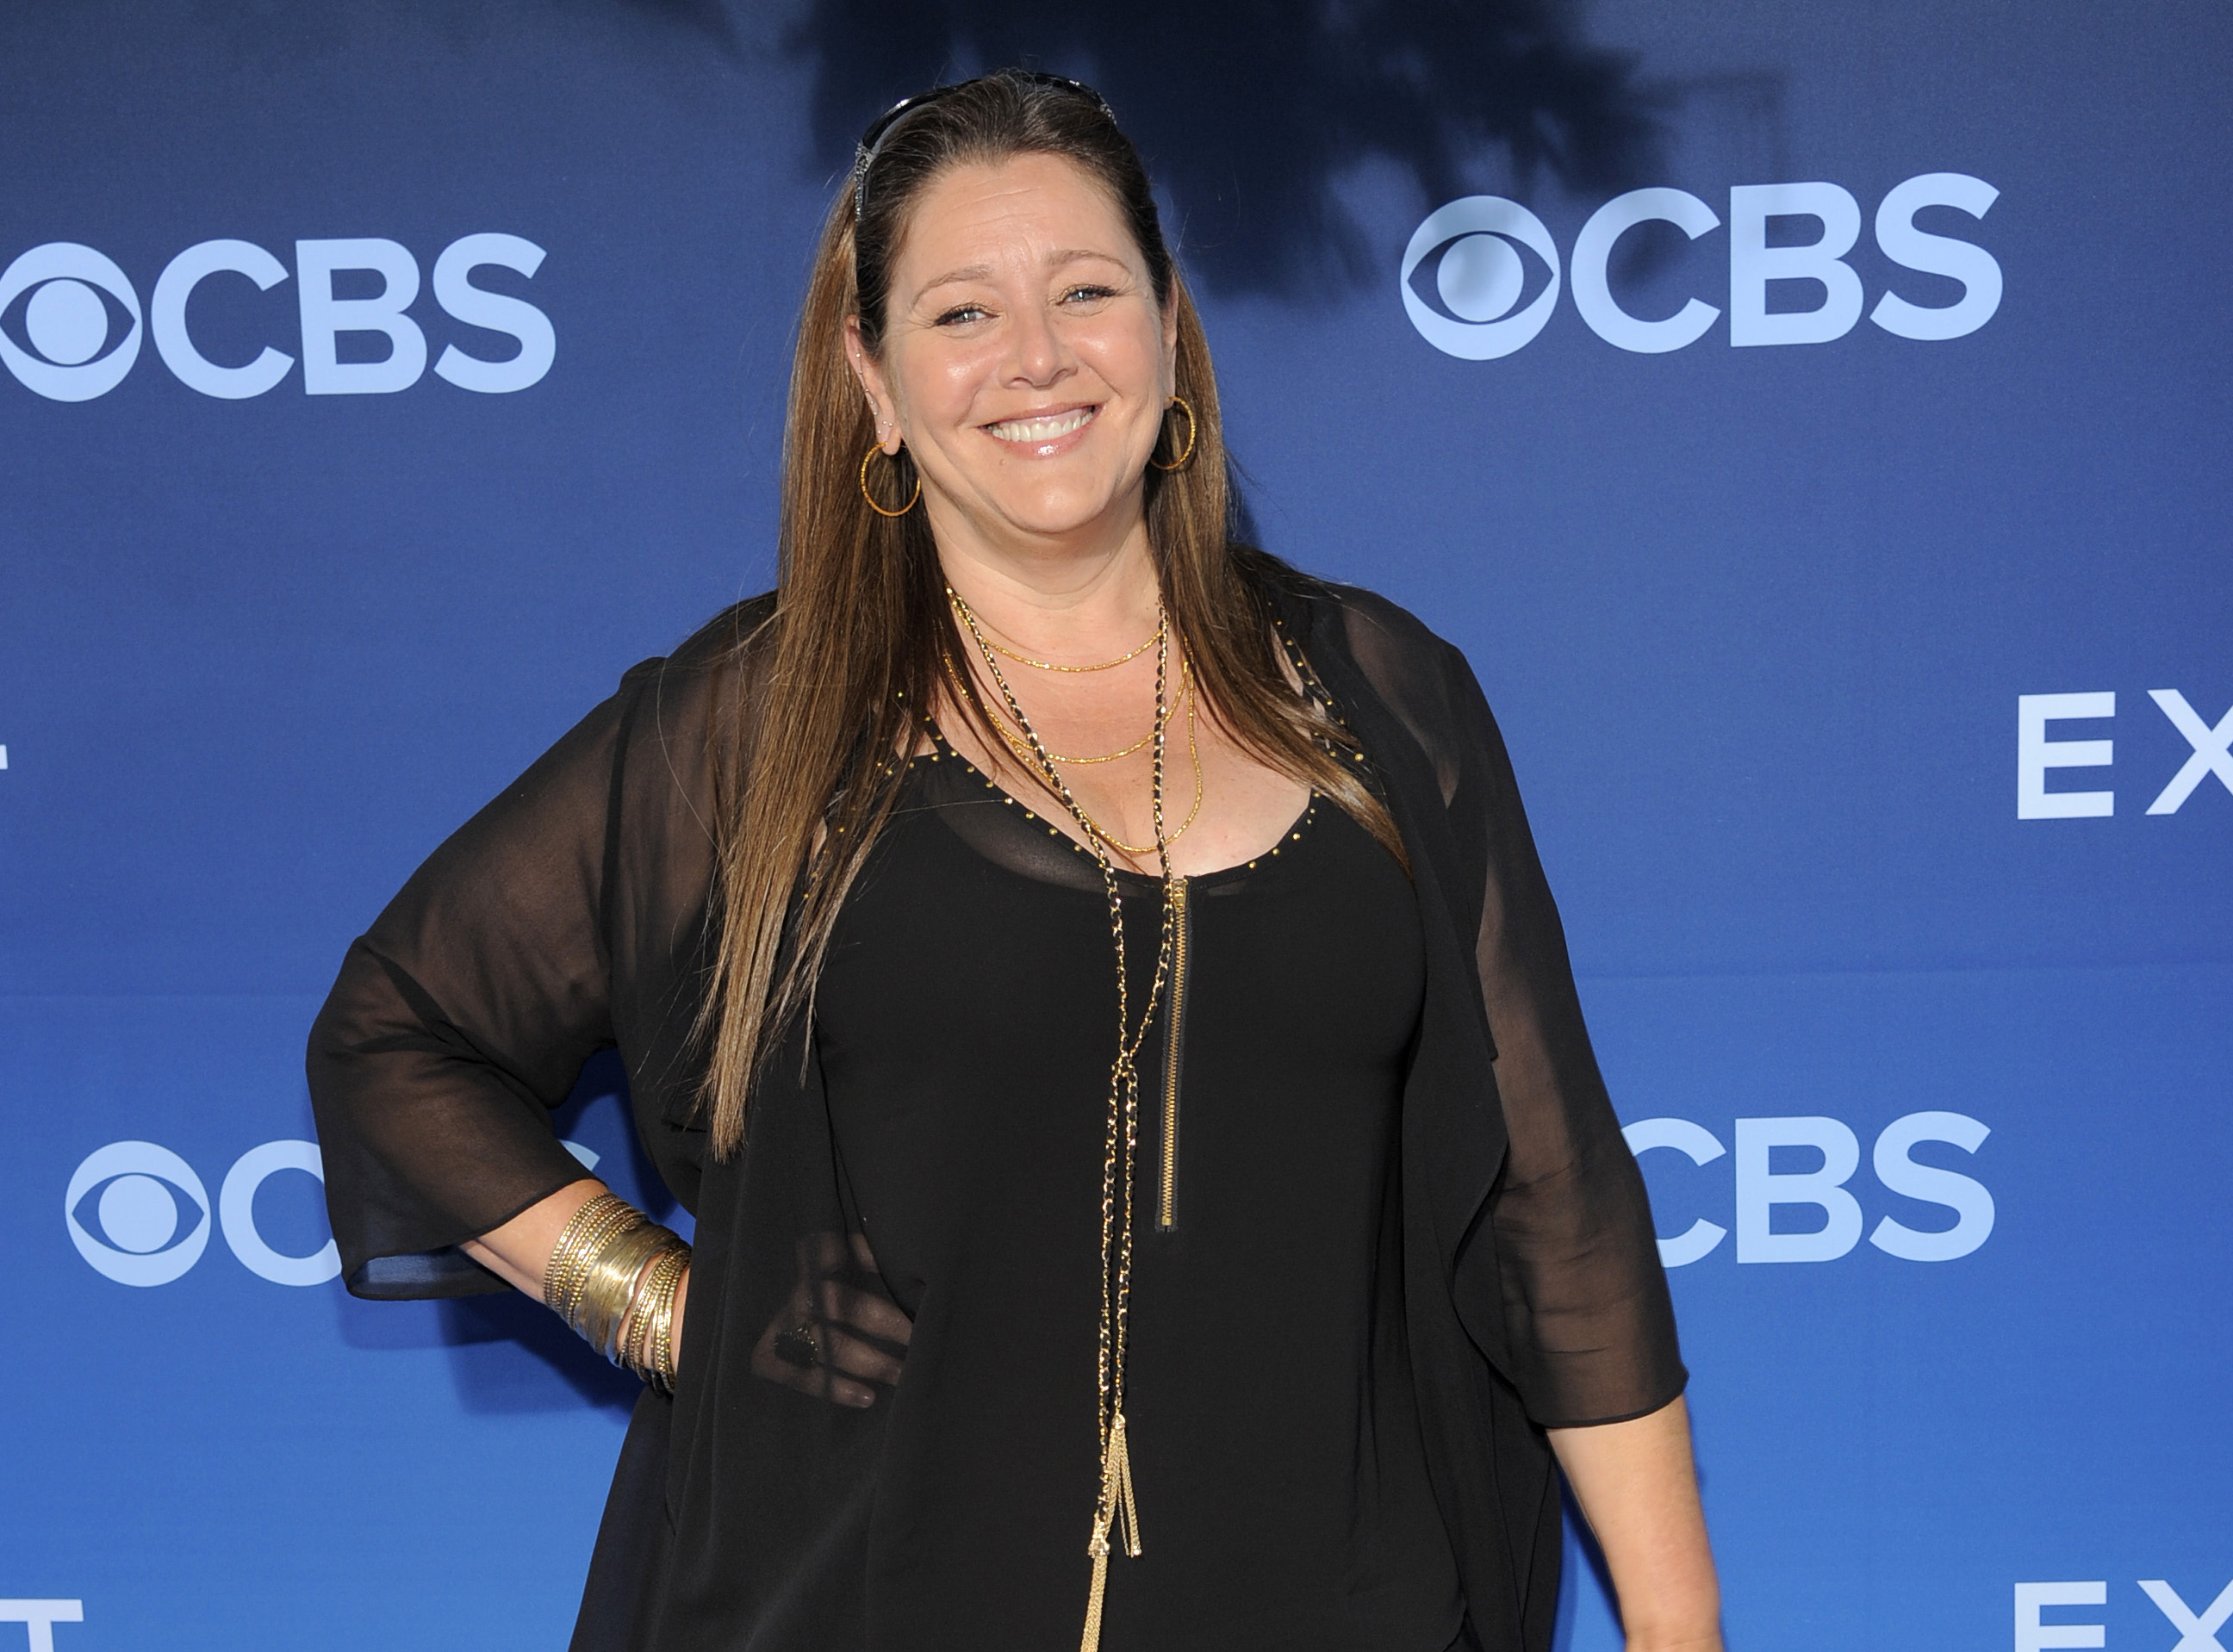 camryn manheim weightcamryn manheim book, camryn manheim, camryn manheim net worth, camryn manheim biography, camryn manheim imdb, camryn manheim instagram, camryn manheim movies, camryn manheim weight loss, camryn manheim movies and tv shows, camryn manheim feet, camryn manheim criminal minds, camryn manheim marriage, camryn manheim son, camryn manheim husband, camryn manheim weight loss surgery, camryn manheim partner, camryn manheim 2015, camryn manheim weight, camryn manheim measurements, camryn manheim hot